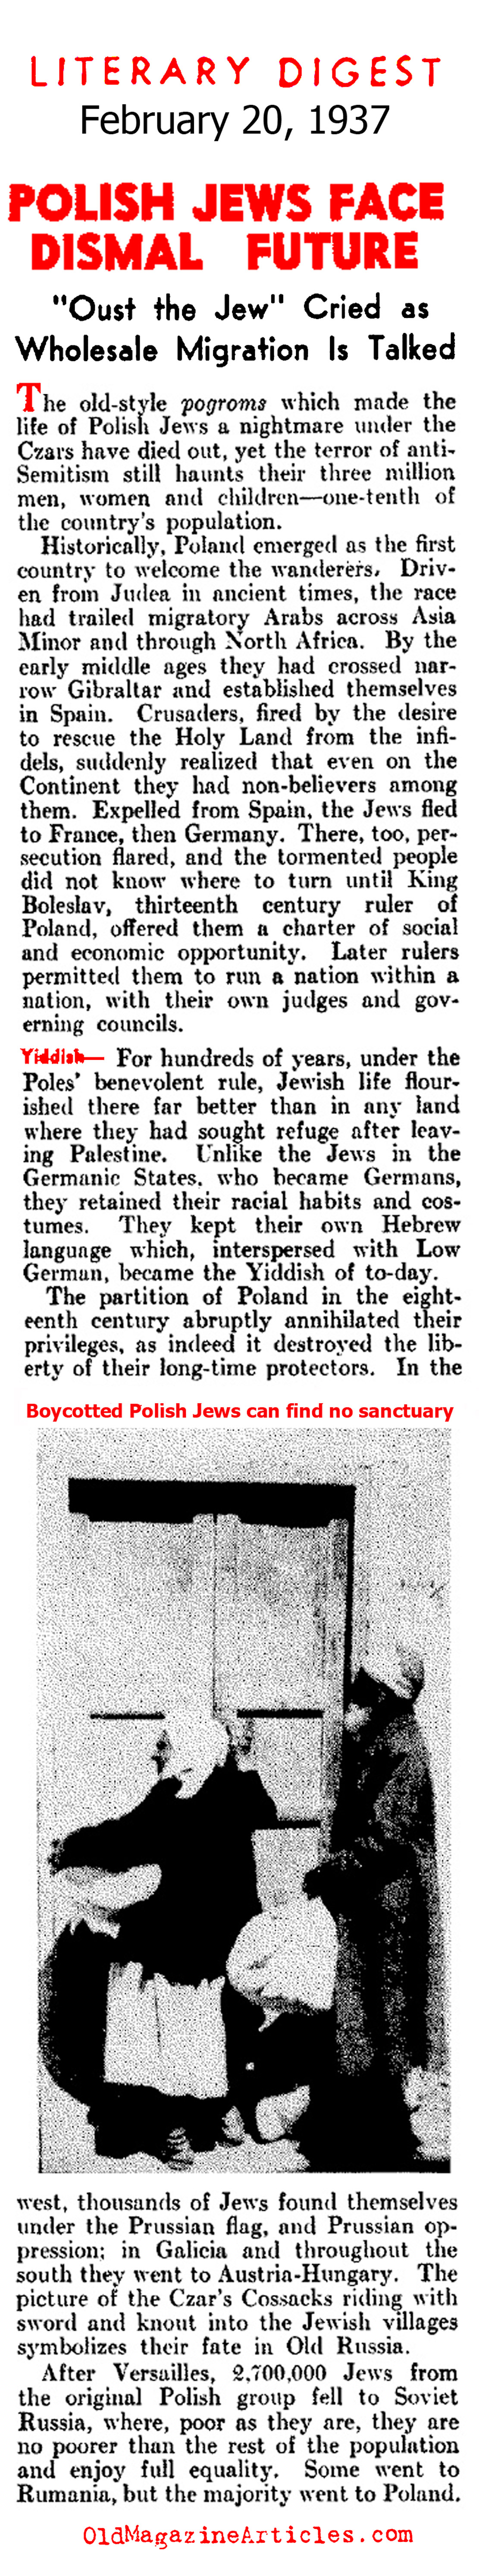 Polish Jews Face Dismal Future (Literary Digest, 1937)